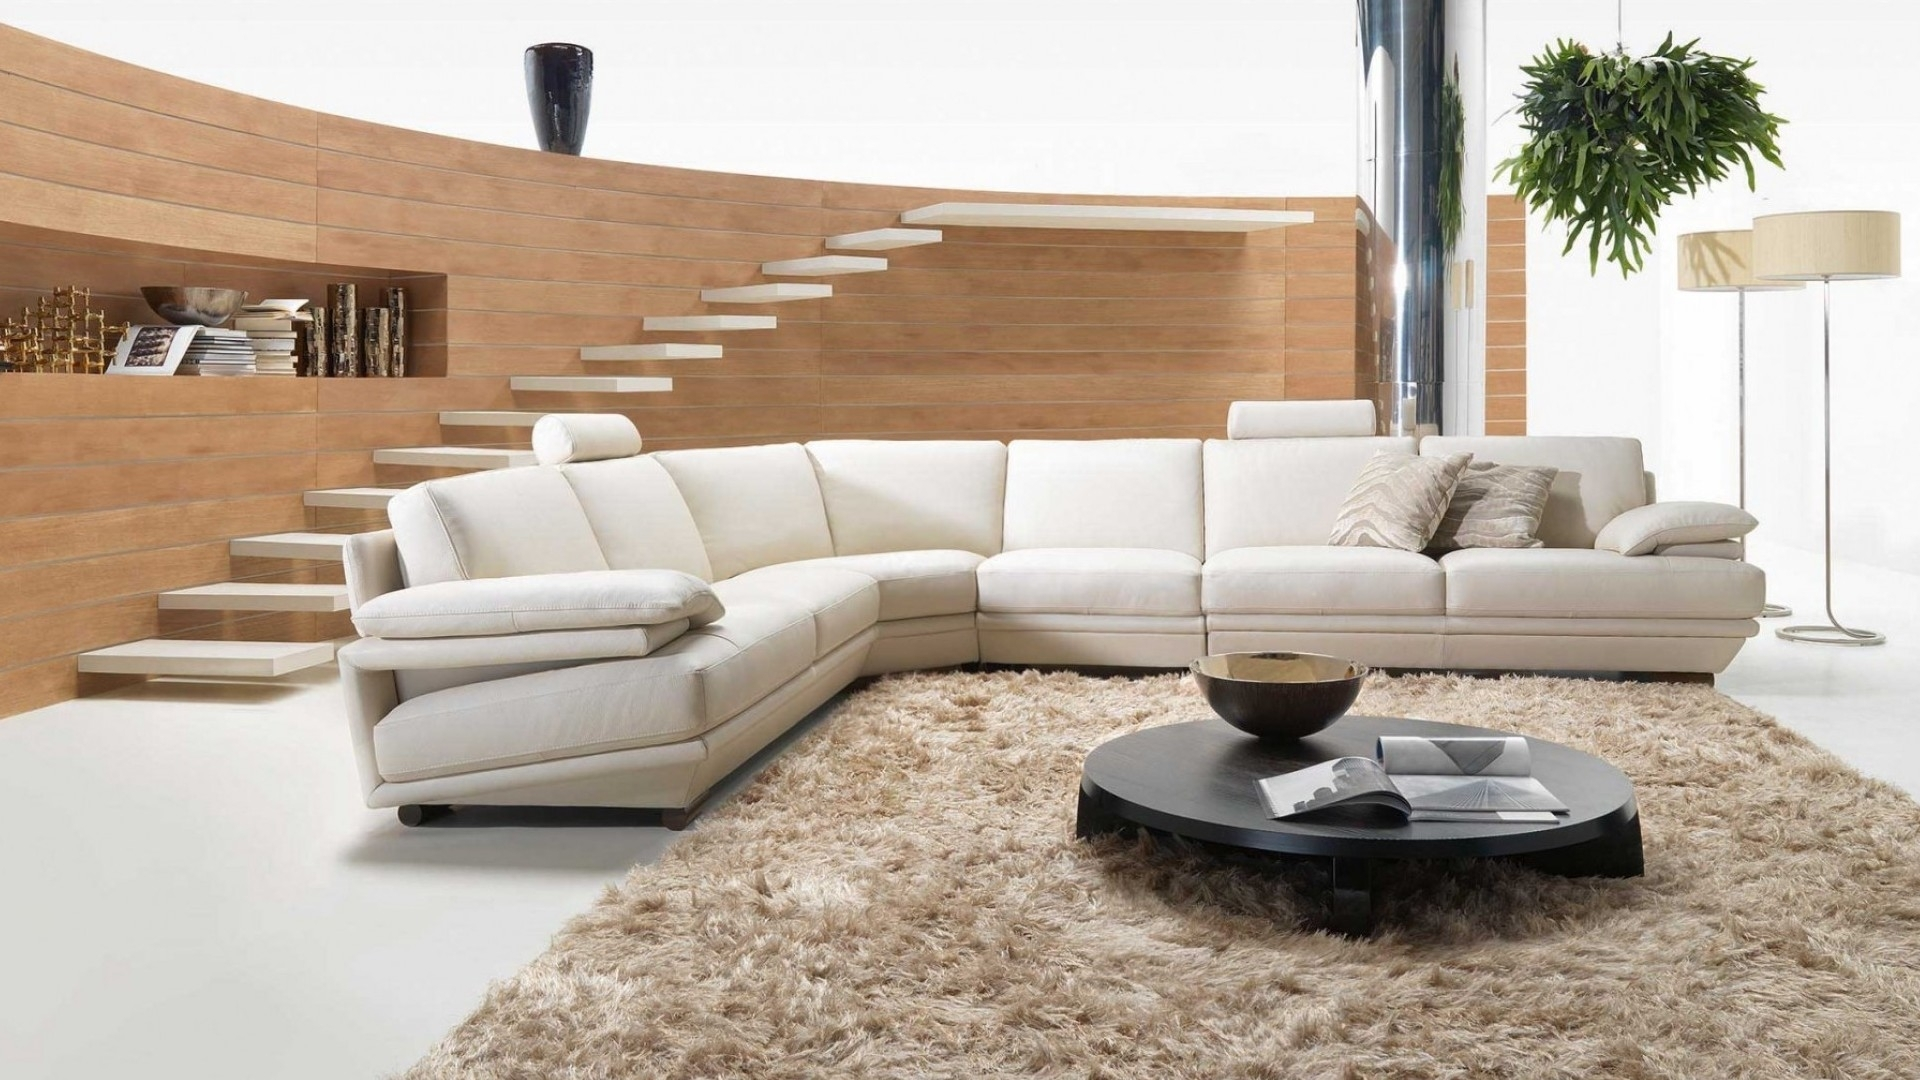 Natuzzi Sectional Sofa   Home And Textiles Throughout Natuzzi Sectional Sofas (Photo 7 of 10)